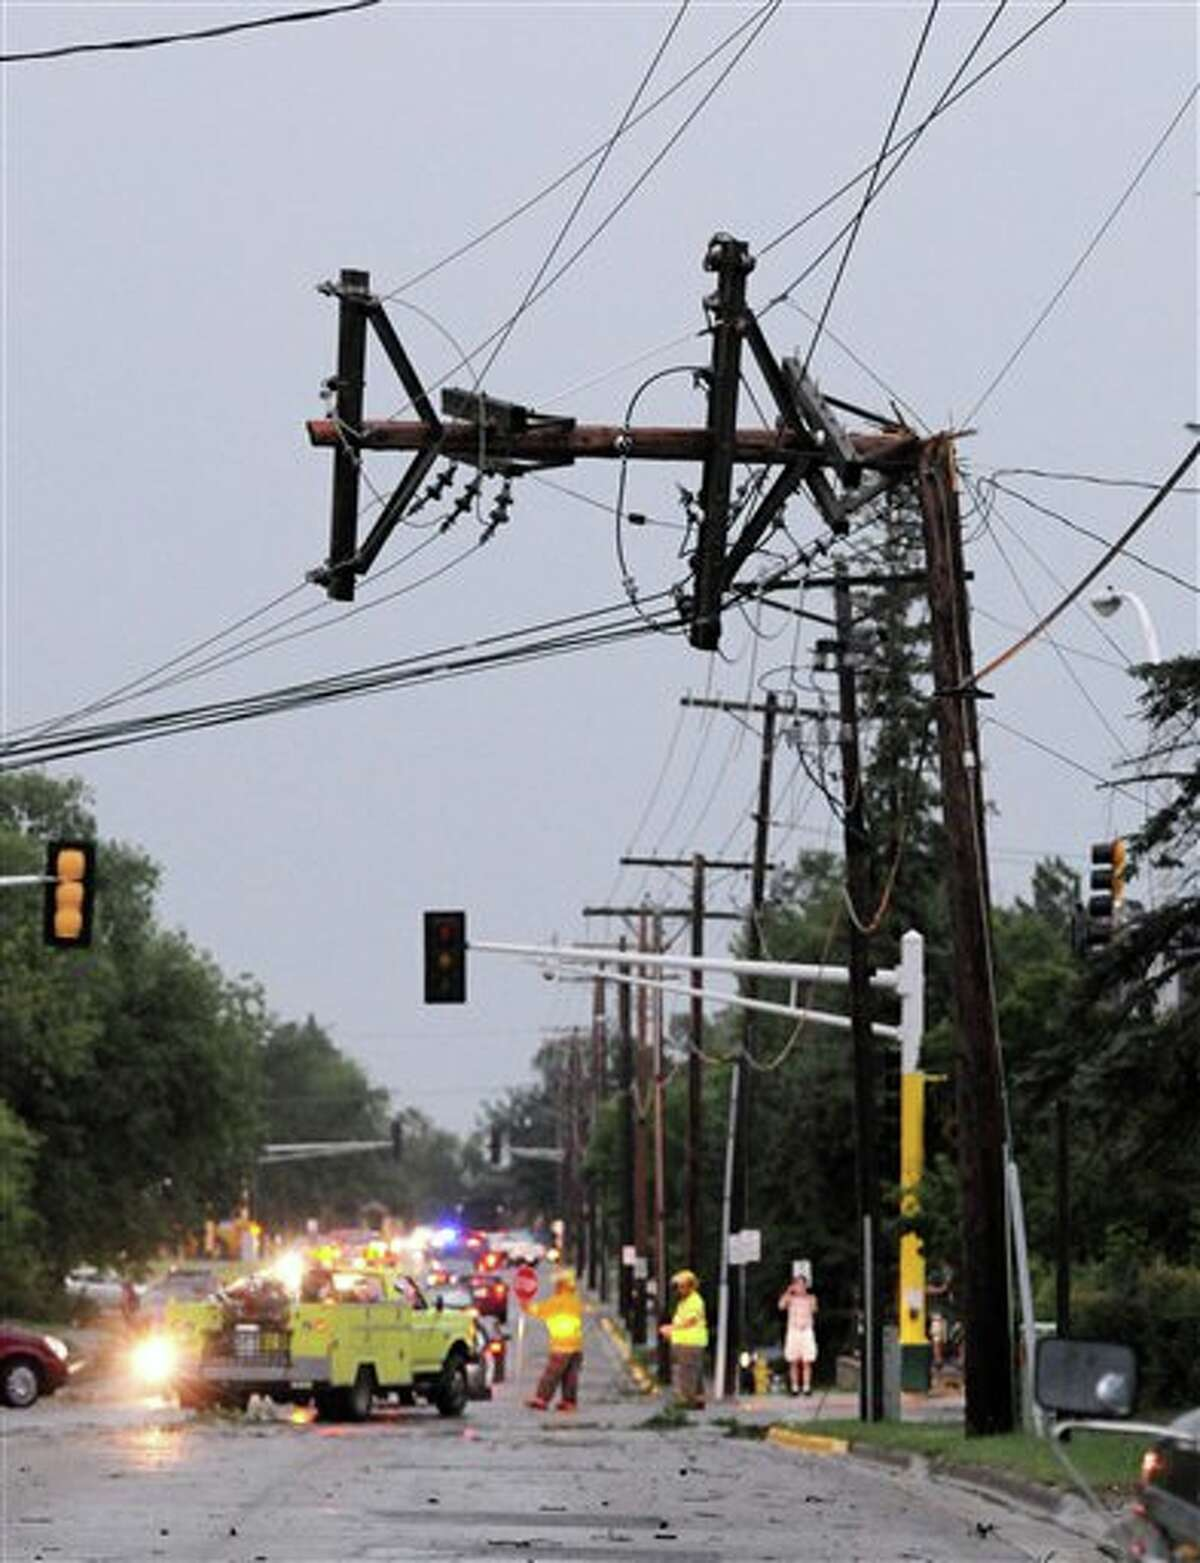 A power pole is bent after severe storms hit the Bemidji, Minn., area, knocking down thousands of trees and causing extensive damage to utility lines, leaving thousands of customers without power in the area. The county's emergency management assistant director, Christopher Muller, says utility crews are working on more than 100 spots where power lines are down and it may take well over 24 hours to restore service.